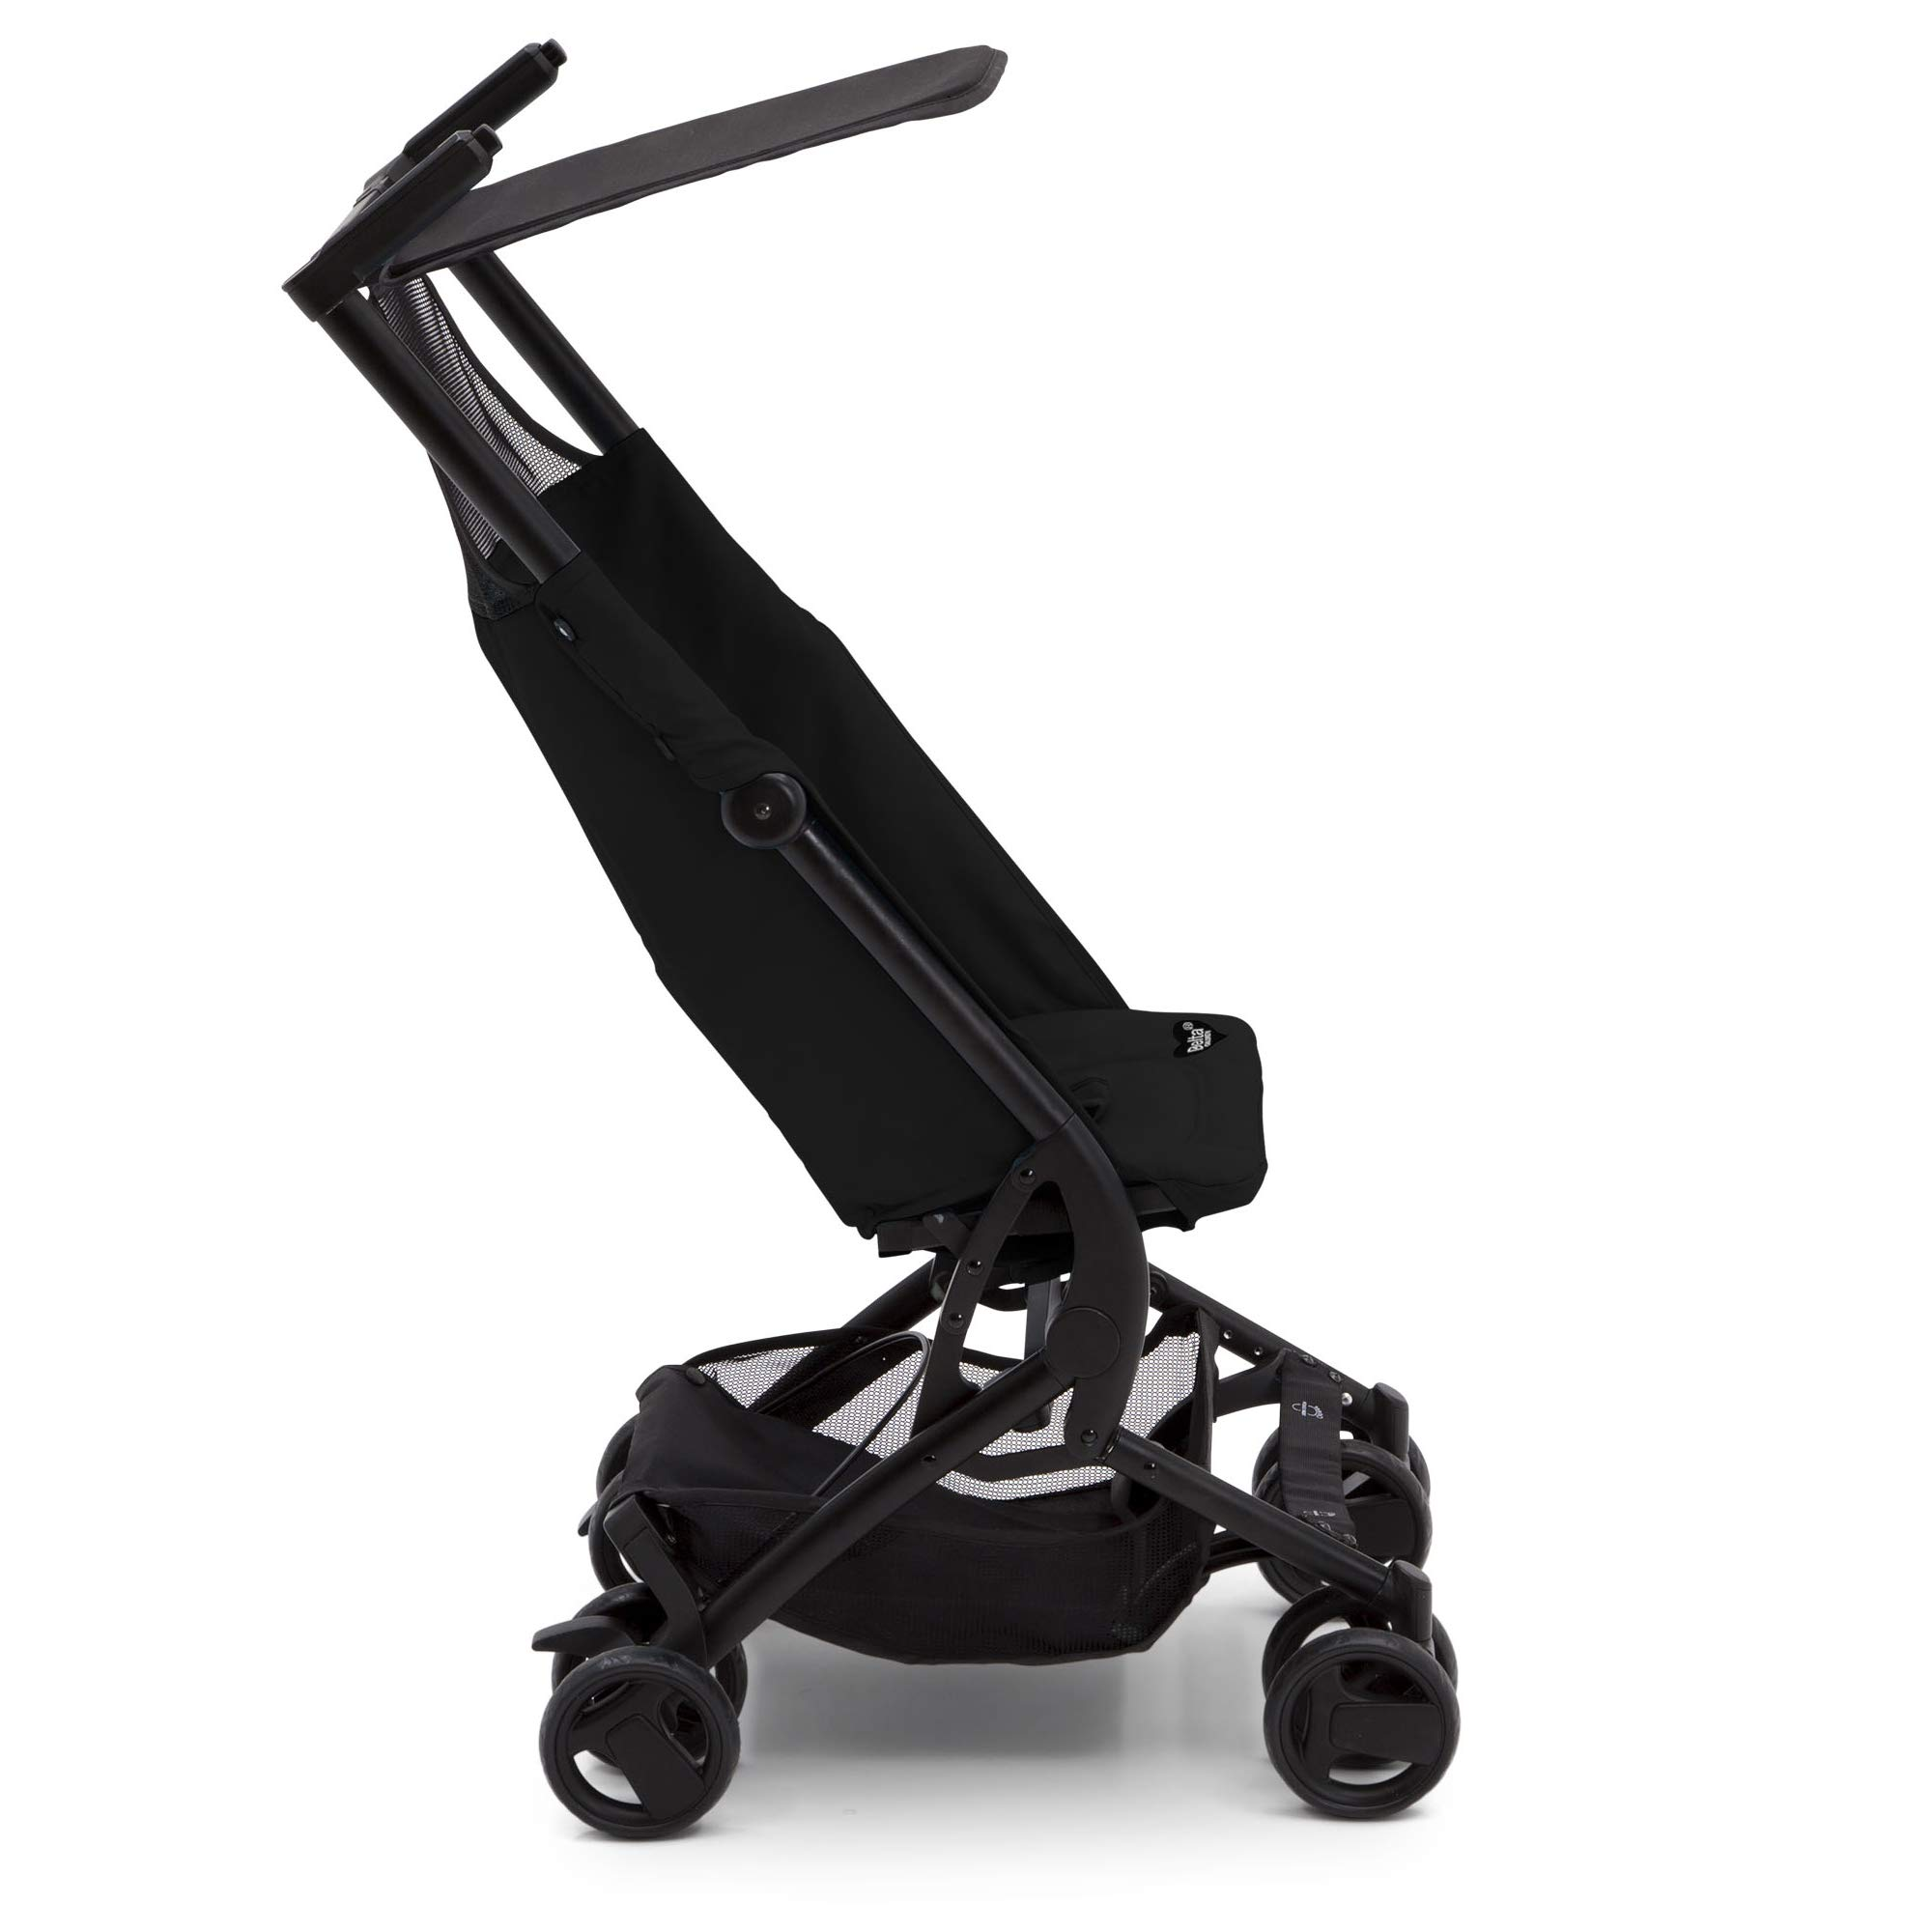 Geling 2 Baby Stroller One Step Design for Open /& Fold Travel Stroller for Airplane Lightweight Stroller For Travel Airplane Tricycle for Toddler 1 Year-4 Years Old with Sunshade Umbrella